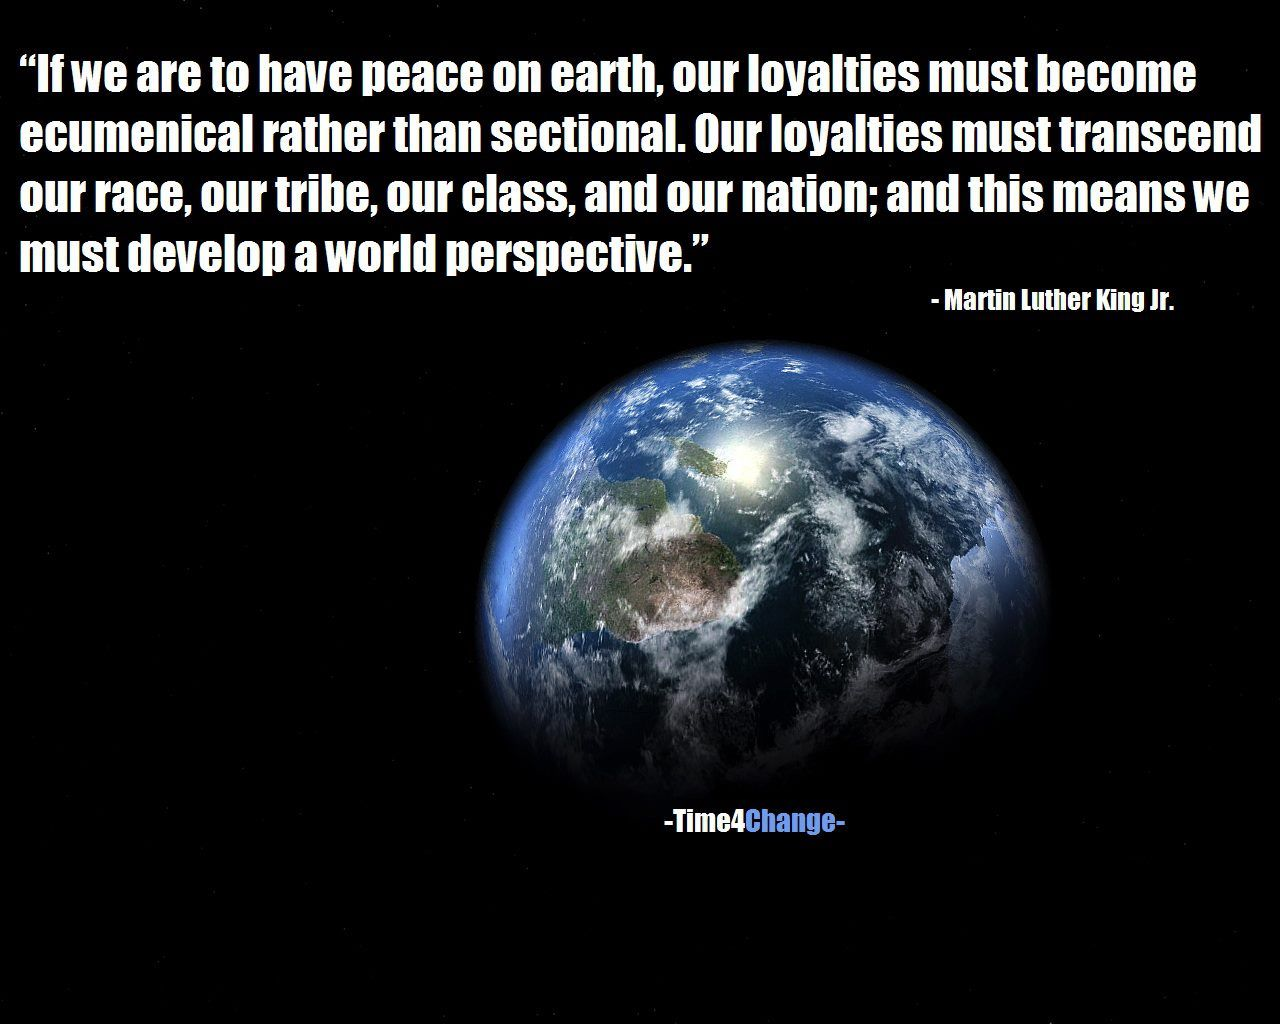 If We Are To Have Peace On Earth Our Loyalties Must Become